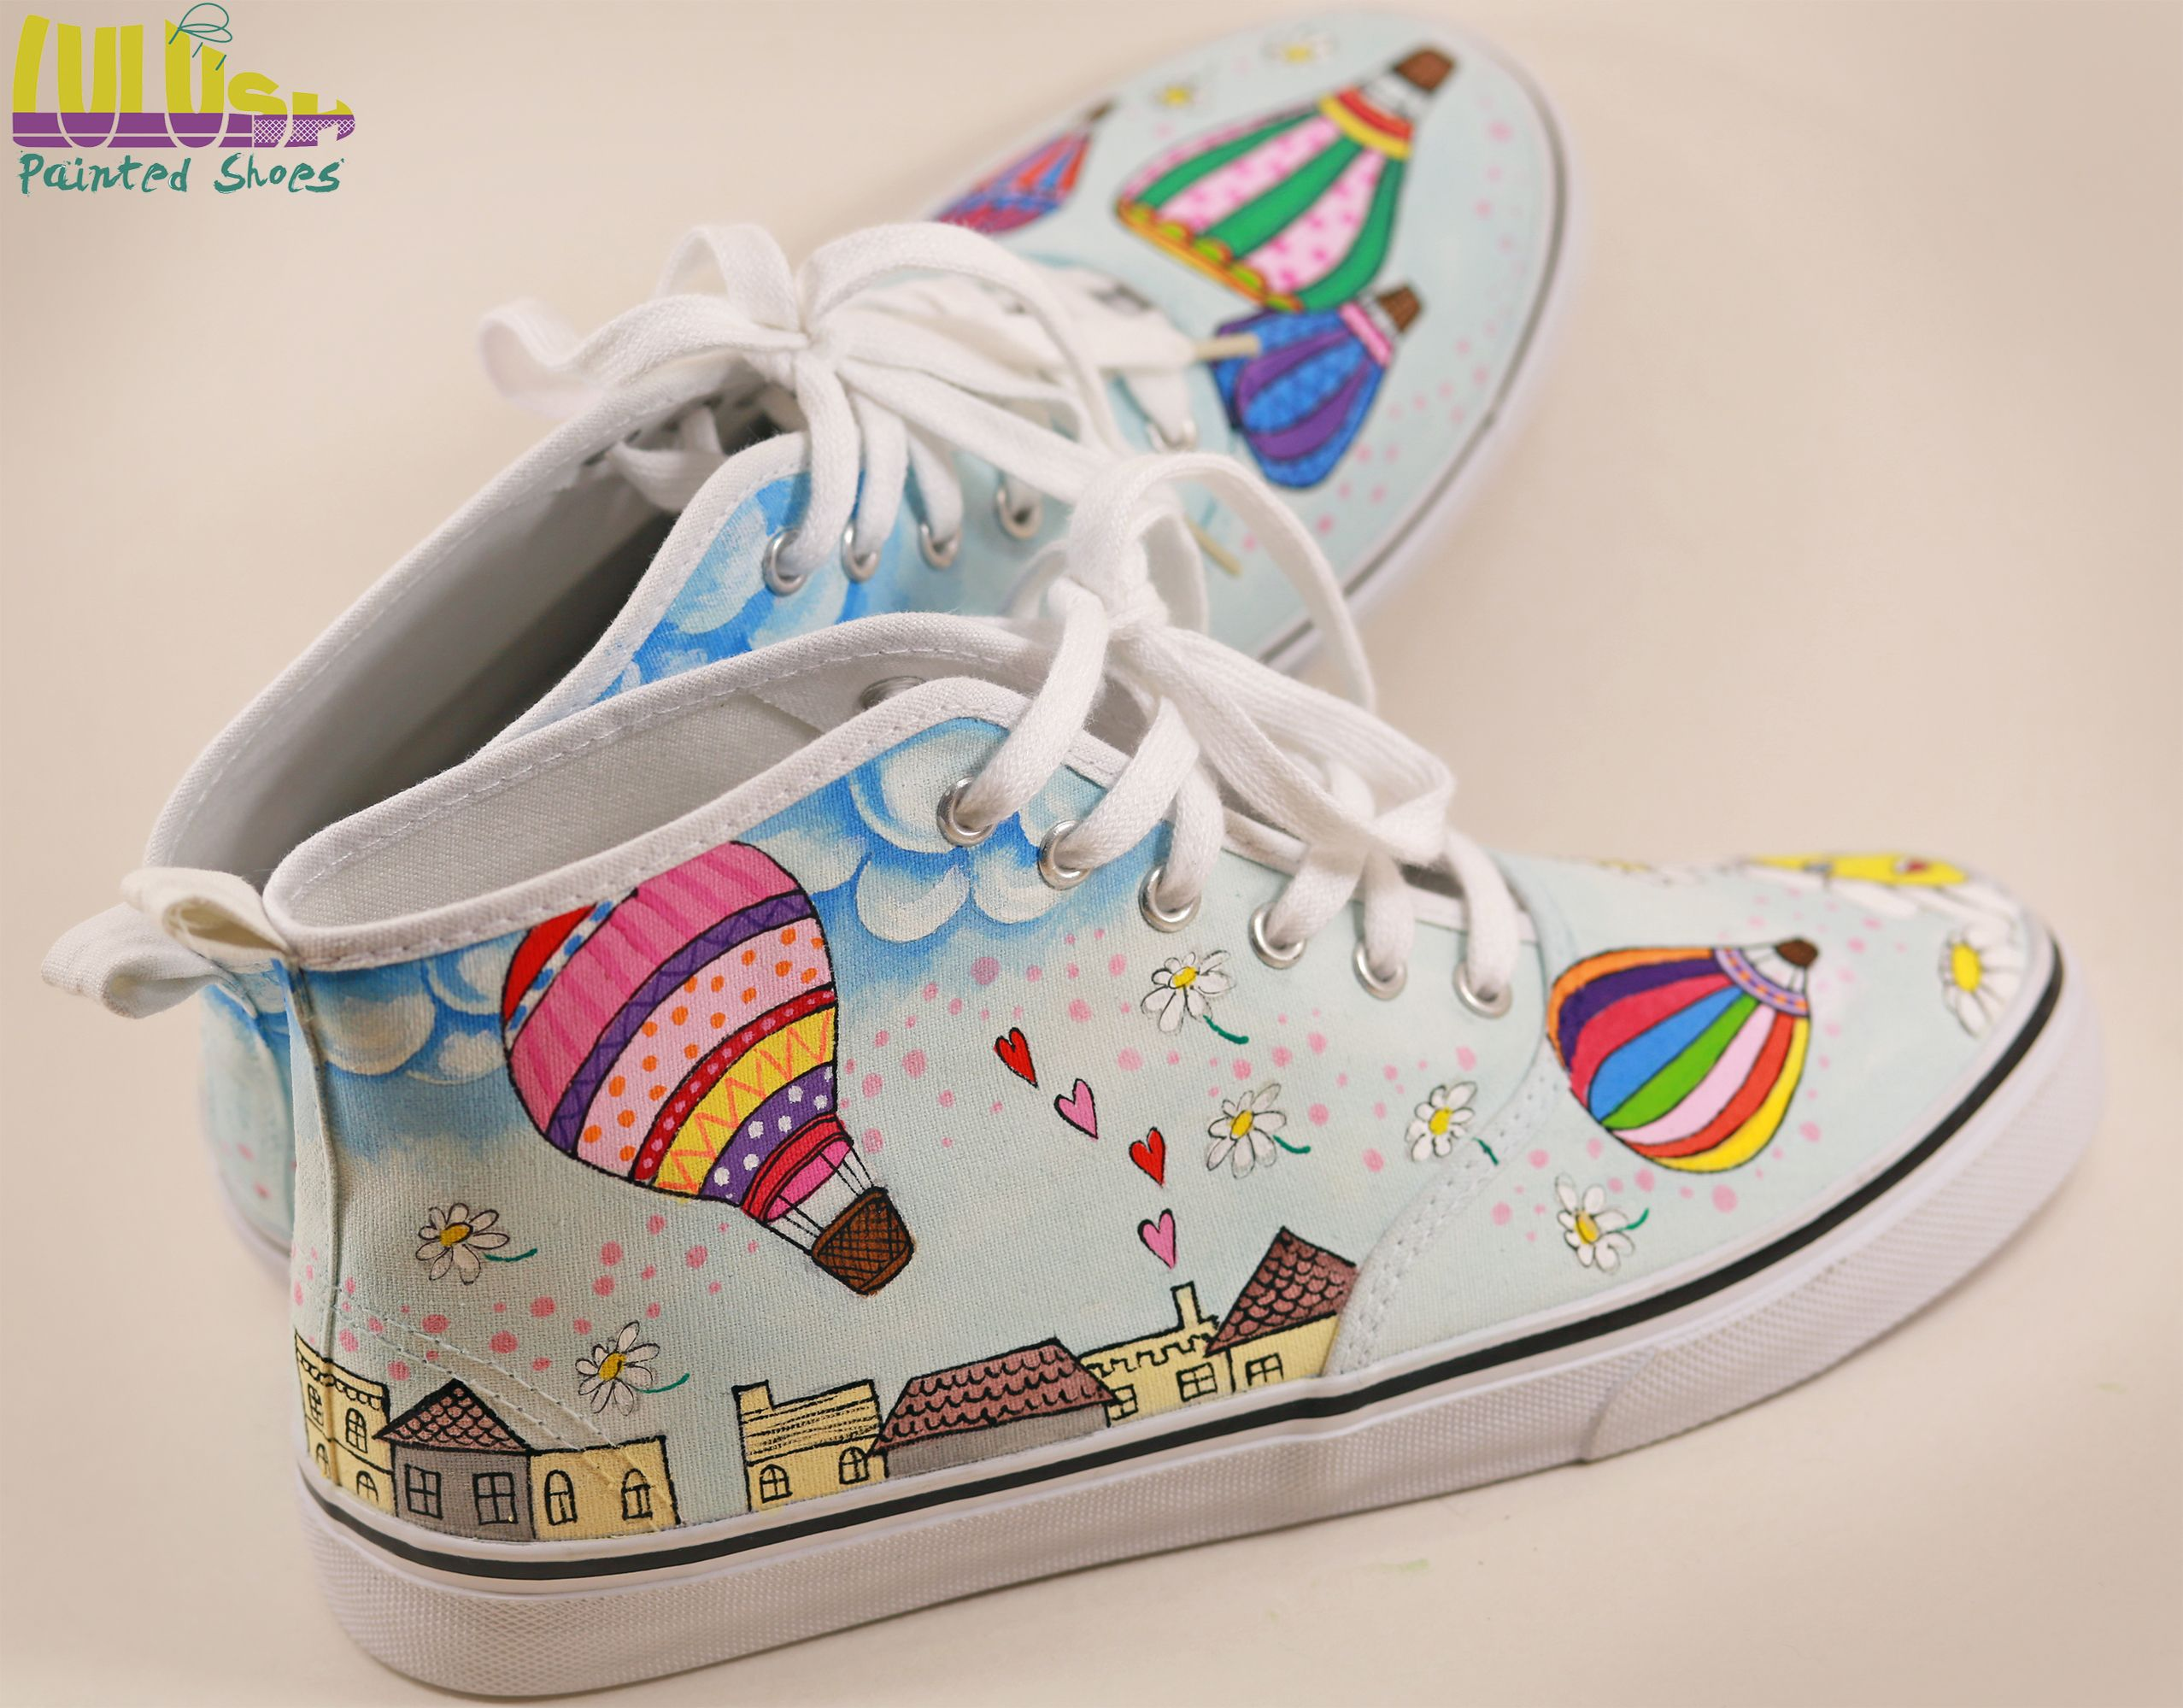 Casual Fashion Shoes for girls - Hand Painted Sneakers with hot air  balloons and daisies -